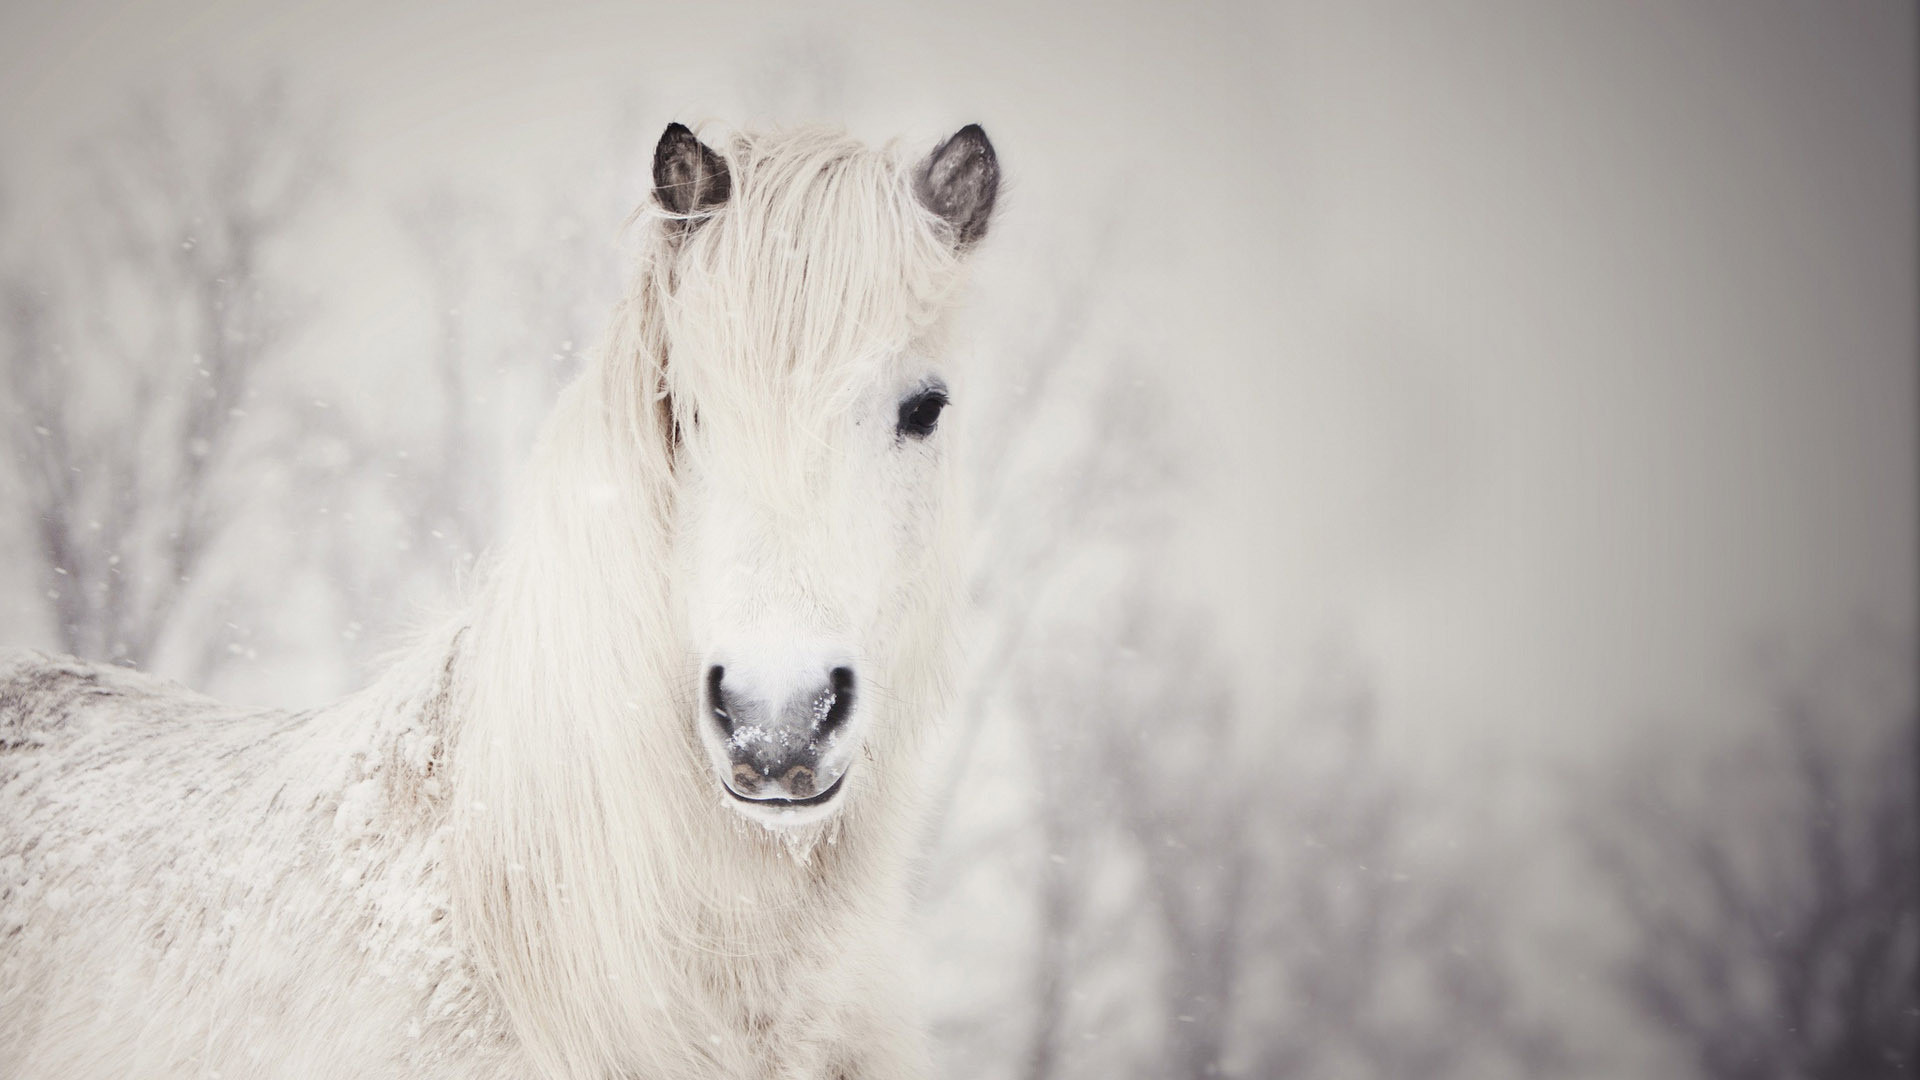 White horse in the snow HD Wallpaper 1920×1080